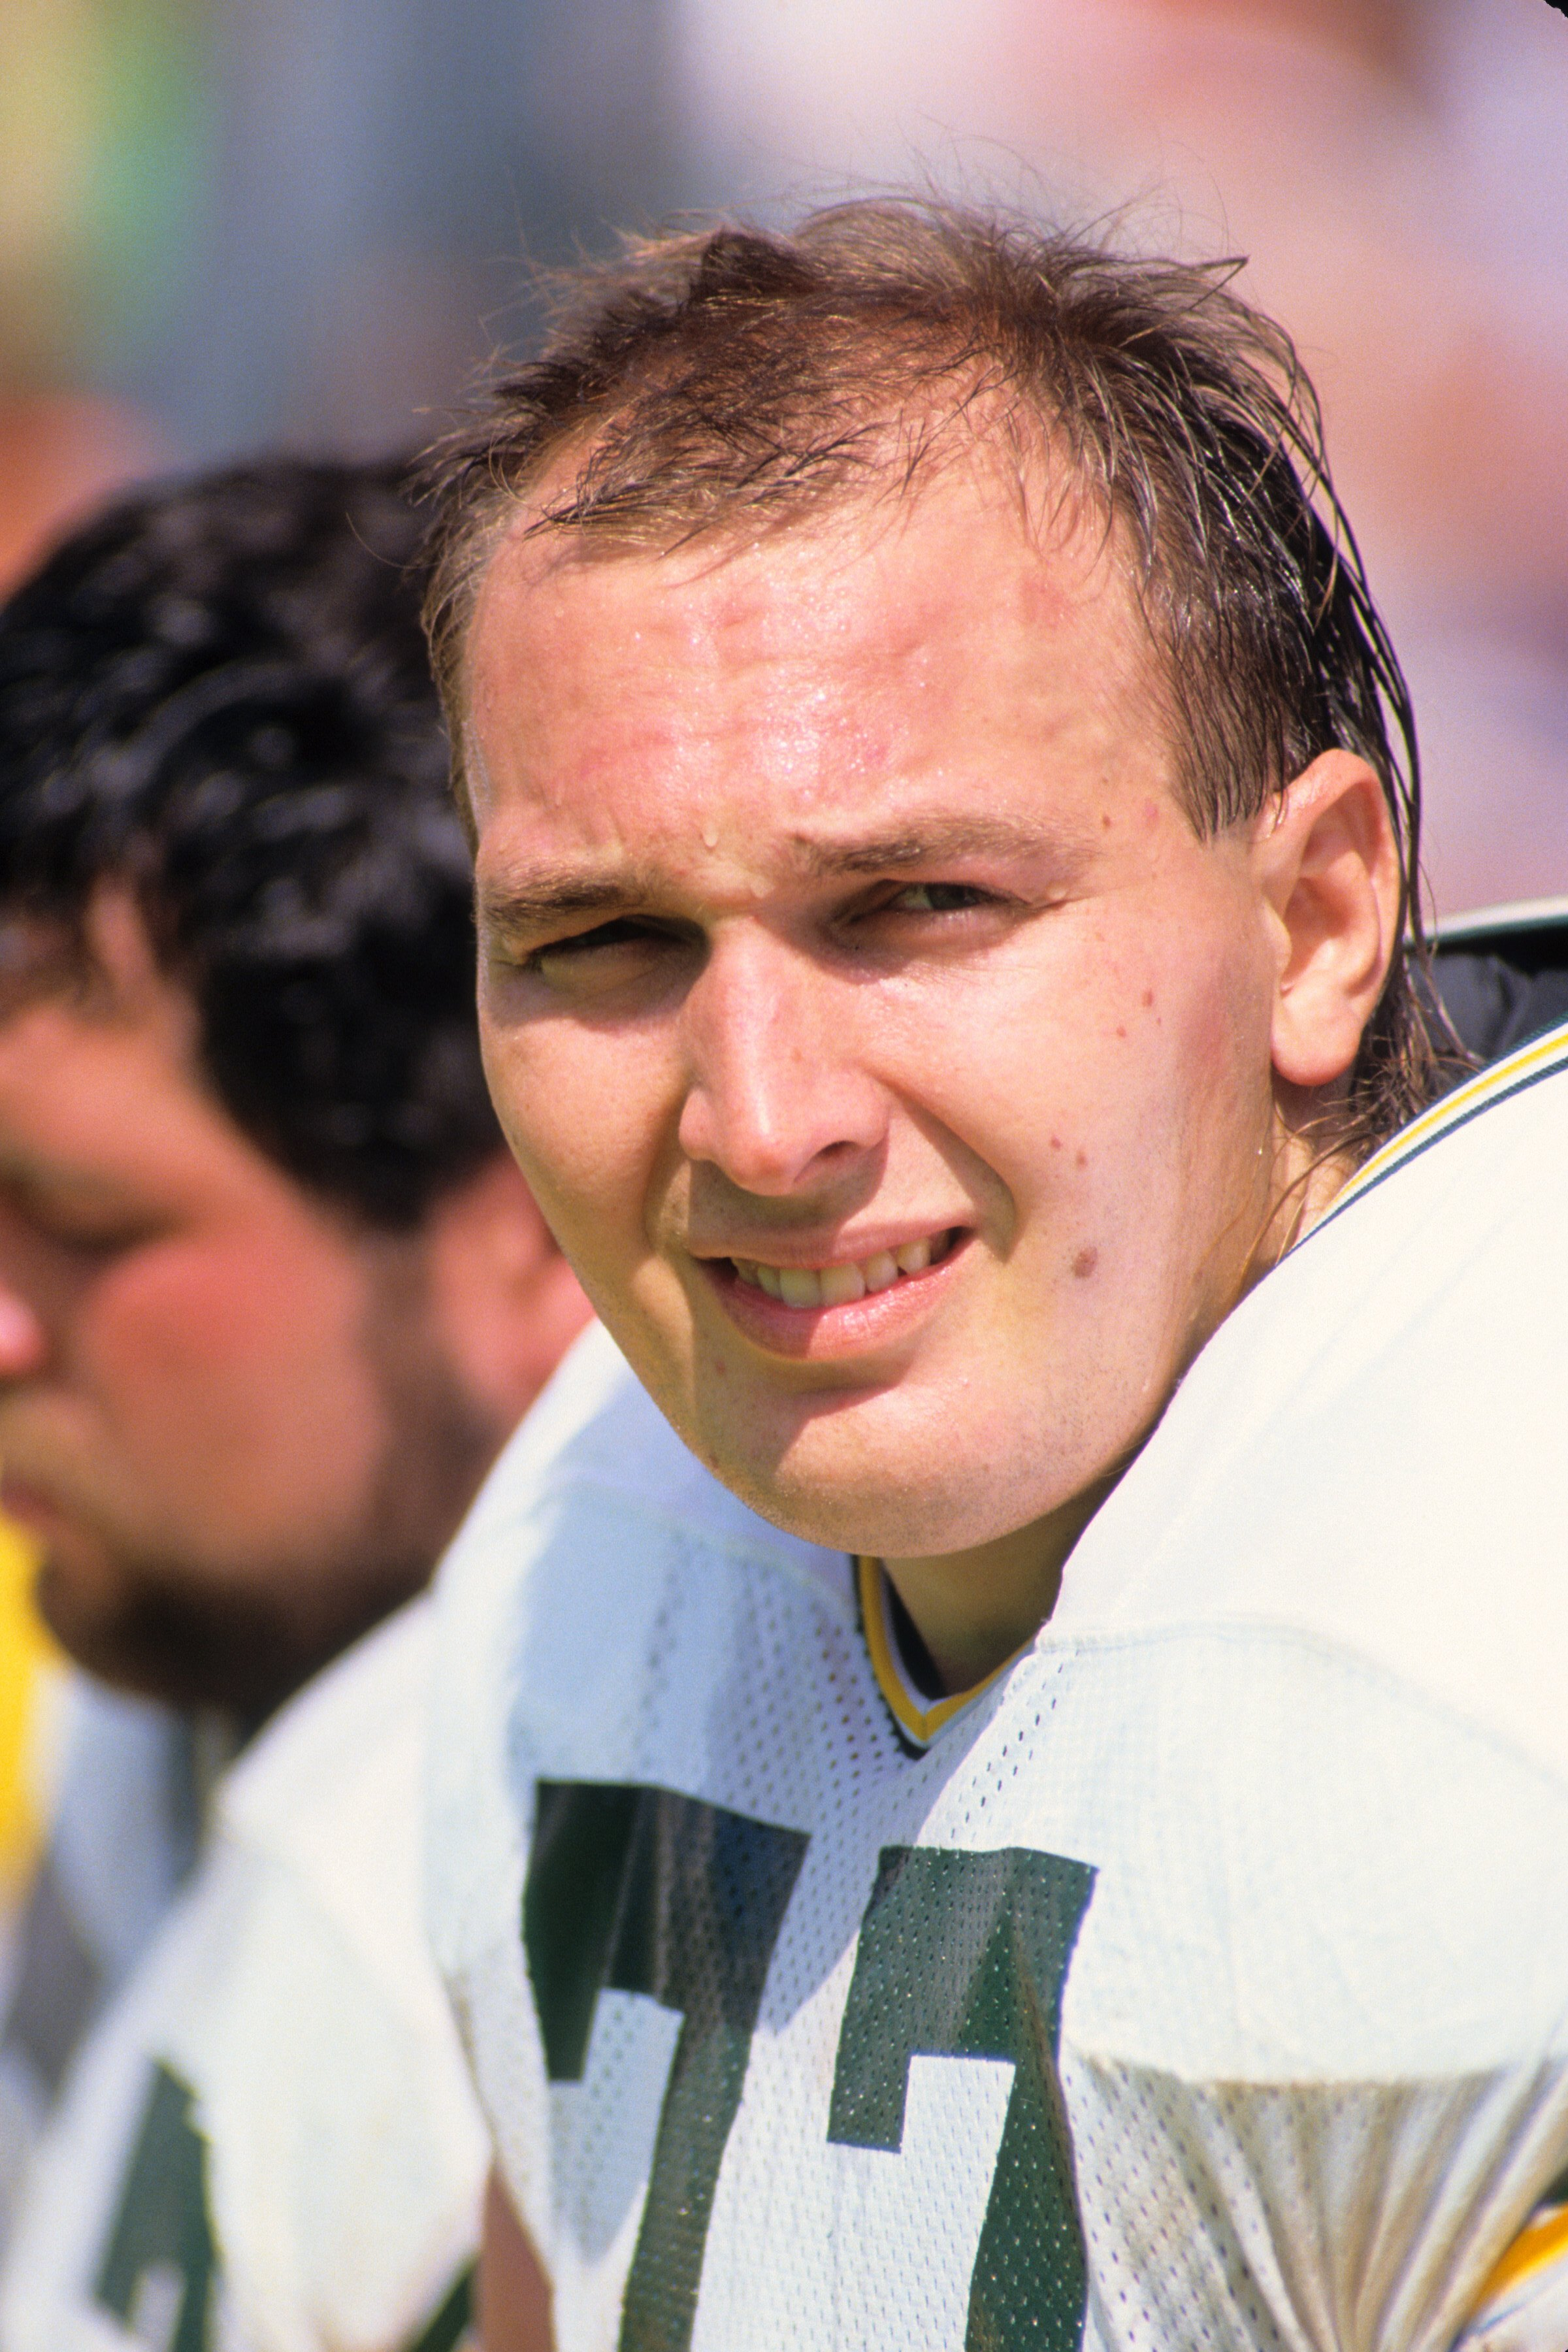 ANAHEIM, CA - SEPTEMBER 24:  Tony Mandarich #77 of the Green Bay Packers looks on during the game against the Los Angeles Rams at Anaheim Stadium on September 24, 1989 in Anaheim, California.  The Rams won 41-38.  (Photo by George Rose/Getty Images)